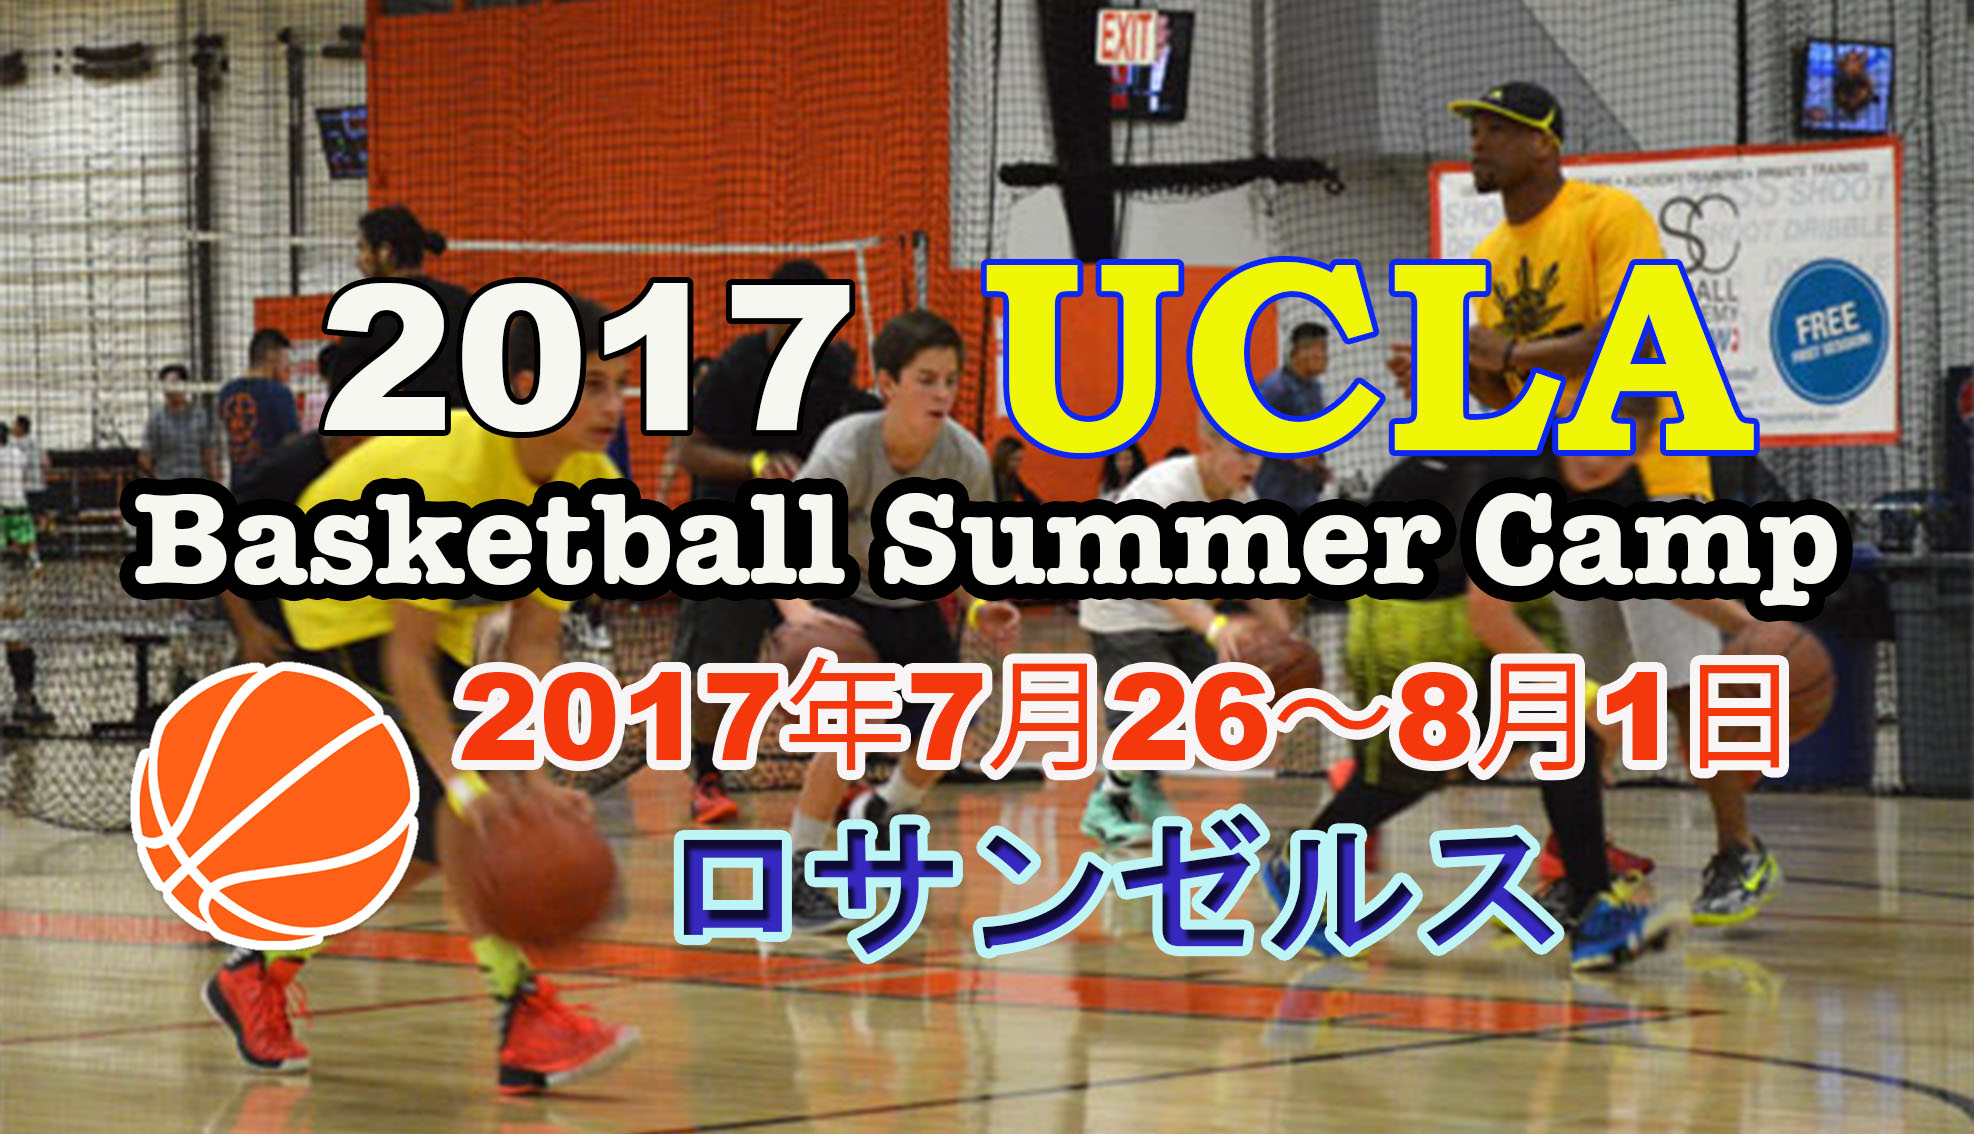 UCLA Basketball Camp 2017 Summer